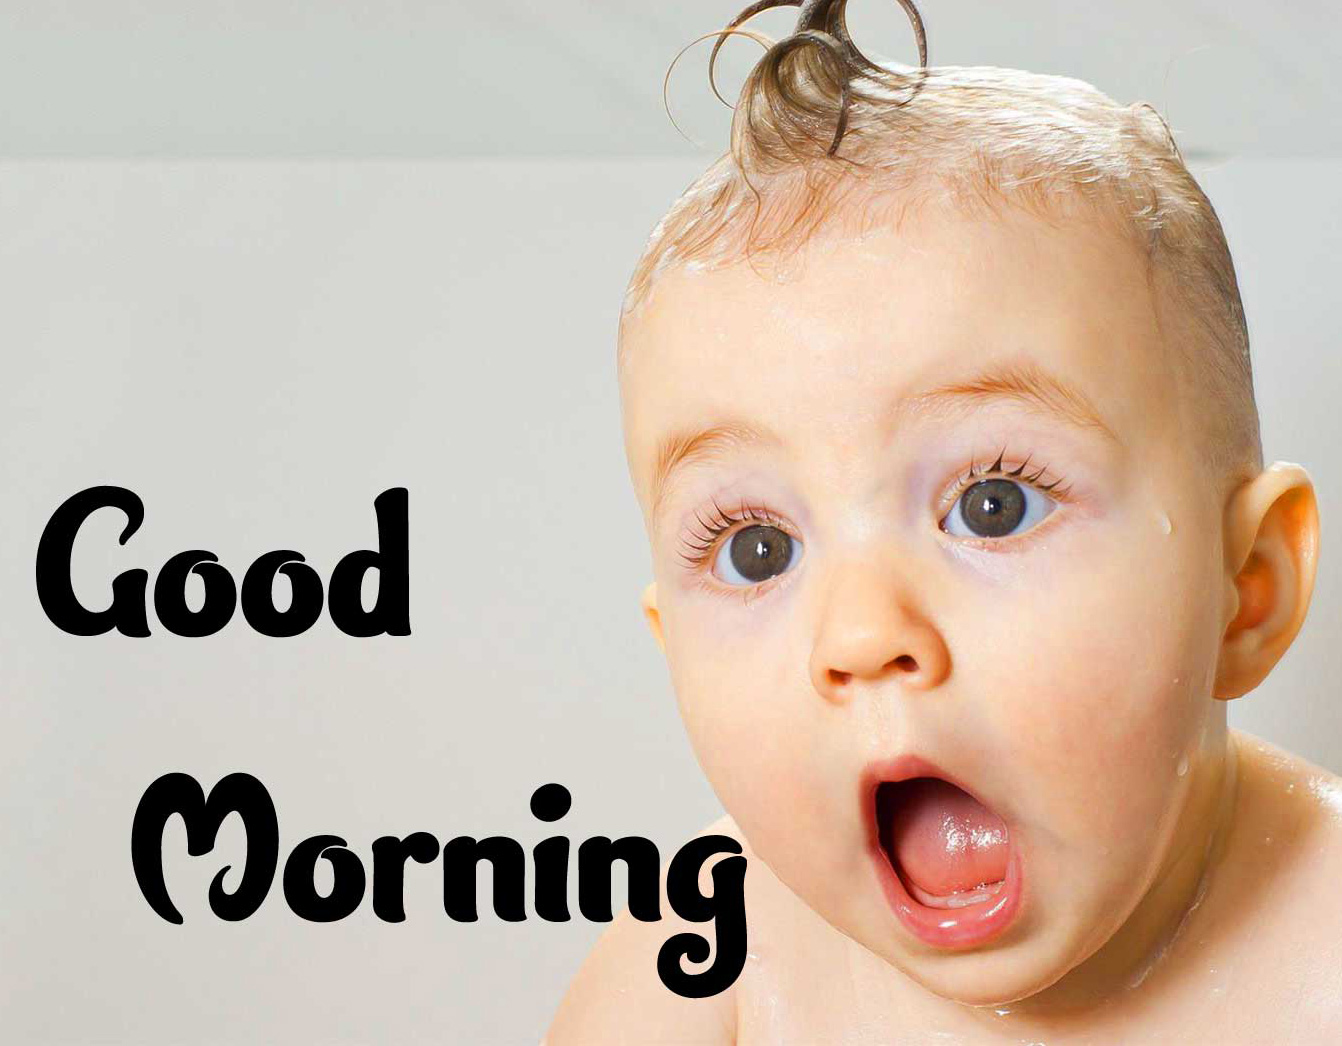 Good Morning Small Baby Images Wallpaper Latest Download